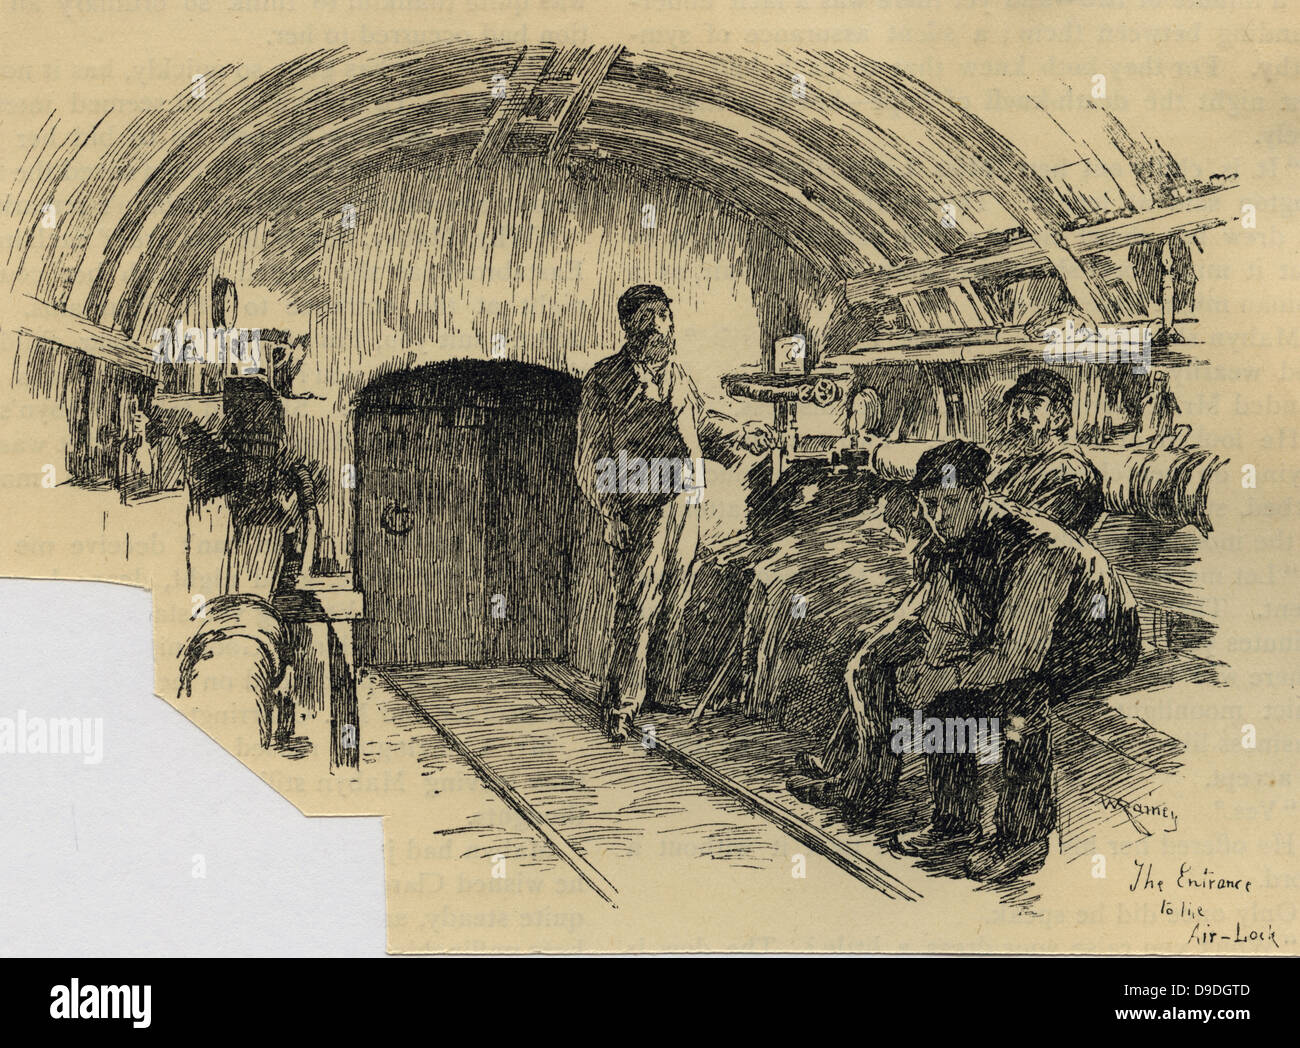 Labourers waiting at airlock to start a 7-hour shift tunnelling under London, 1890. - Stock Image